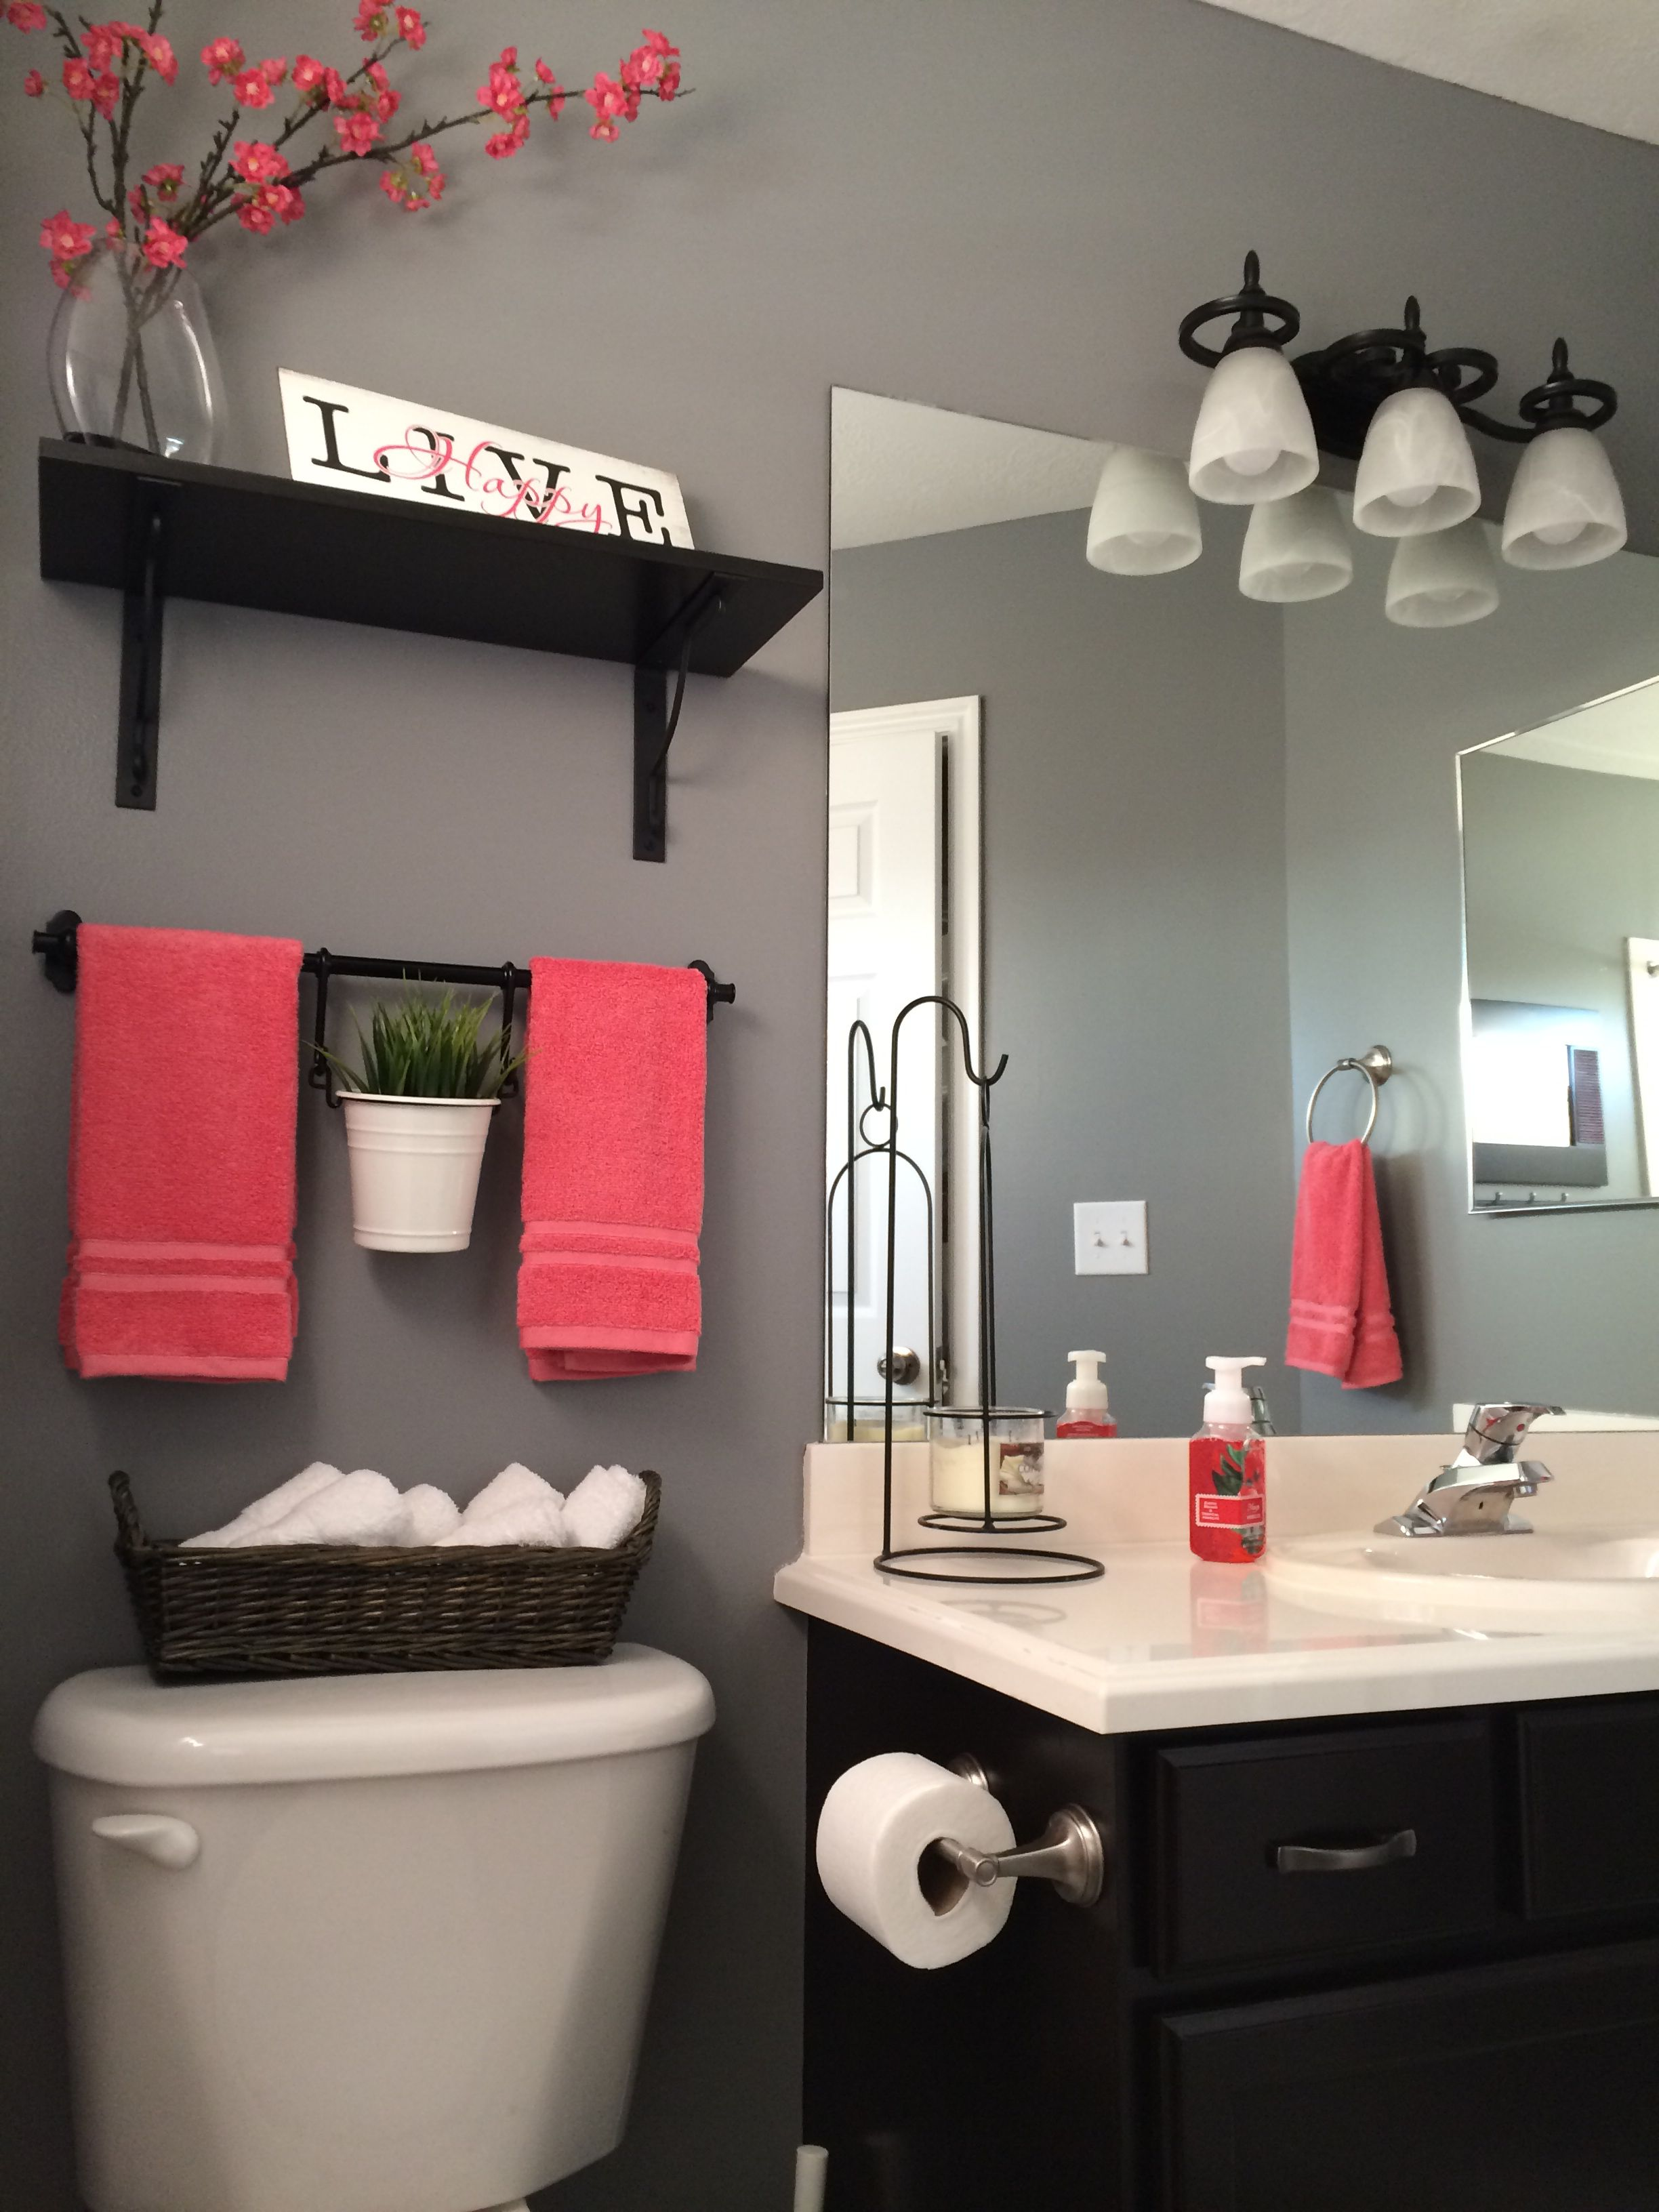 my bathroom remodel. love it!!! kohls towels kohls shower curtain